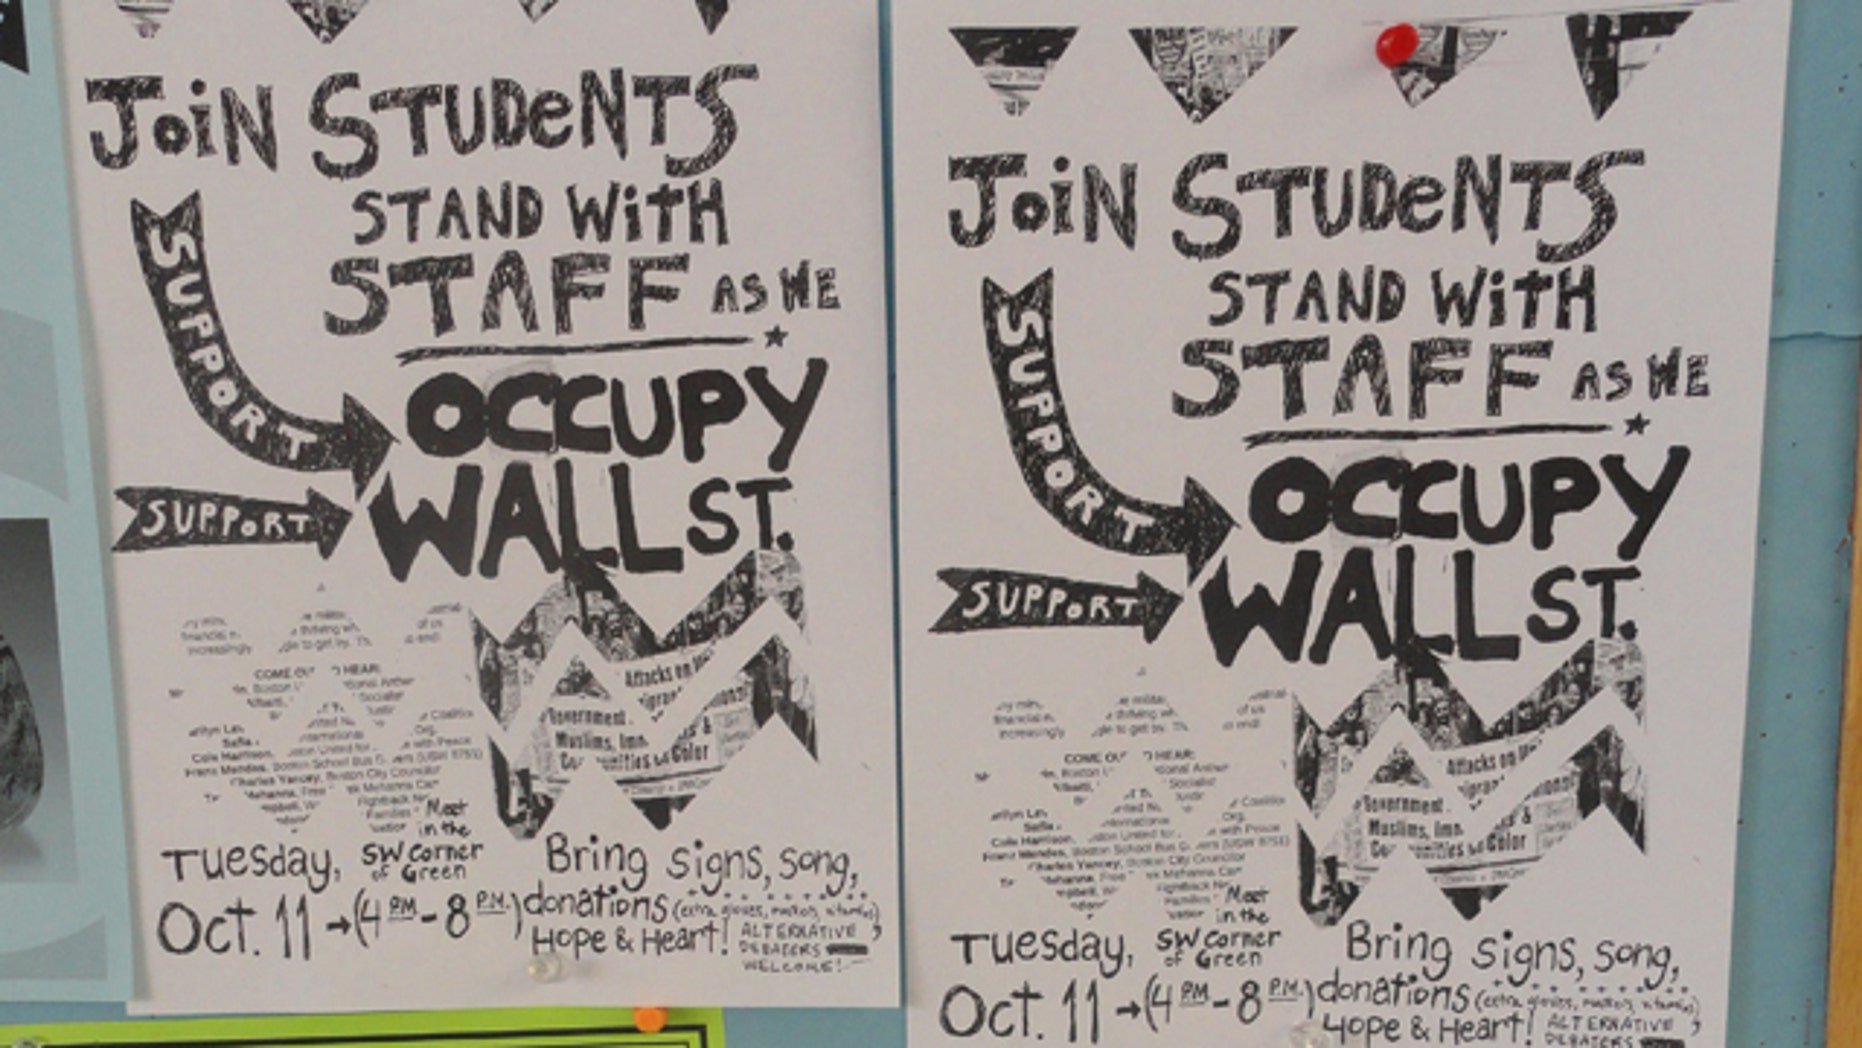 Shown here are posters advertising a protest at Dartmouth College on Oct. 11